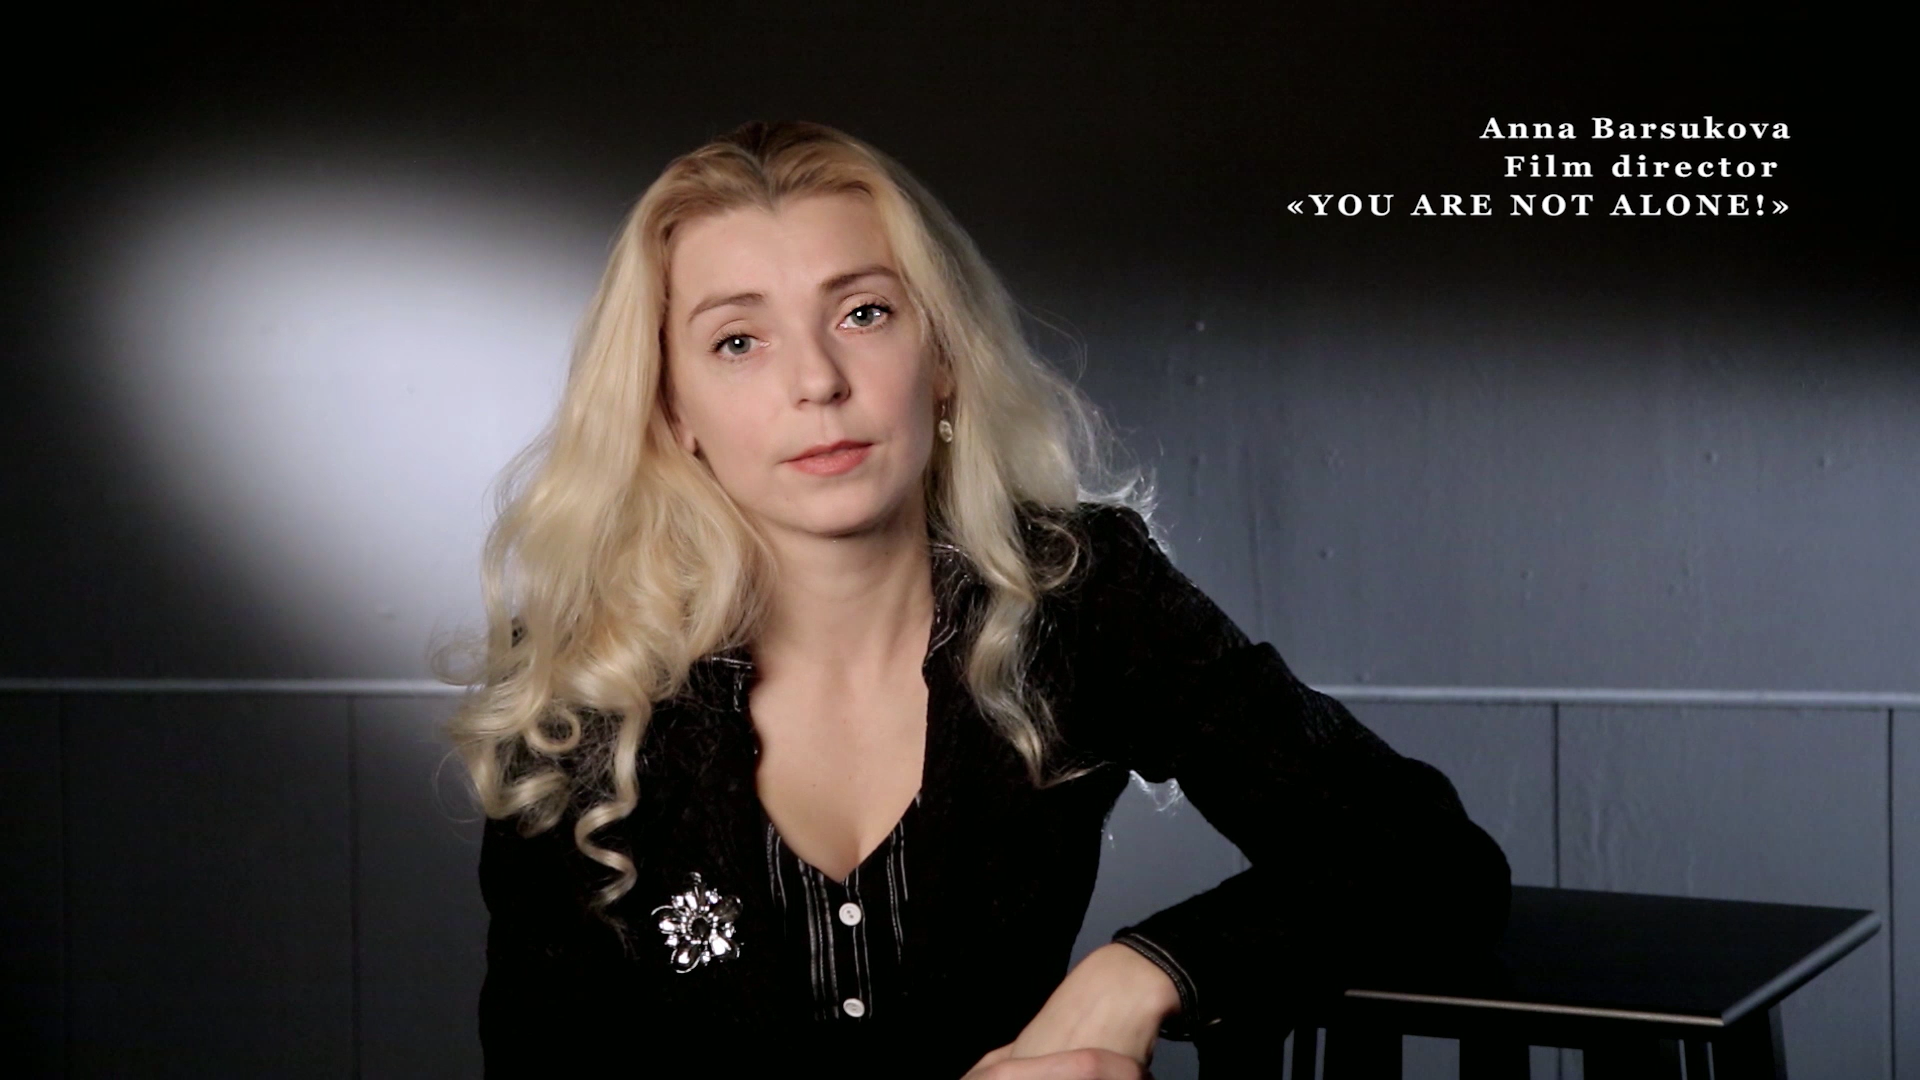 Film director Anna Barsukova #annabarsukova #youarenotalone #аннабарсукова #тынеодин #movie #film